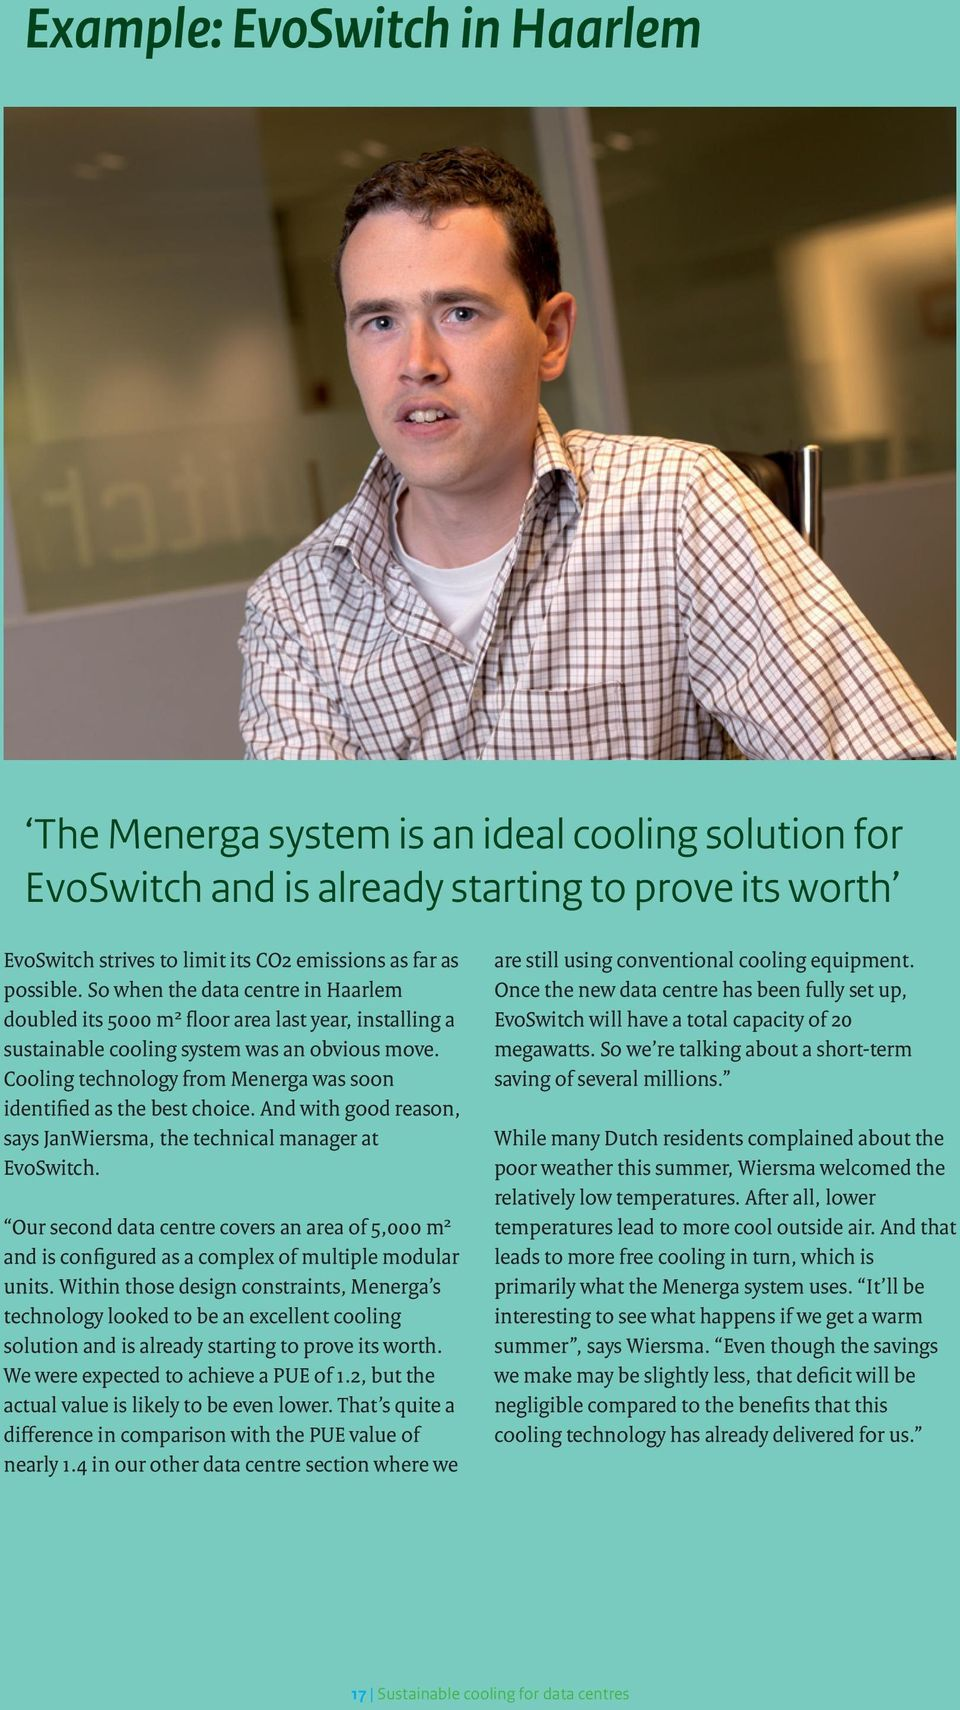 Cooling technology from Menerga was soon identified as the best choice. And with good reason, says JanWiersma, the technical manager at EvoSwitch.